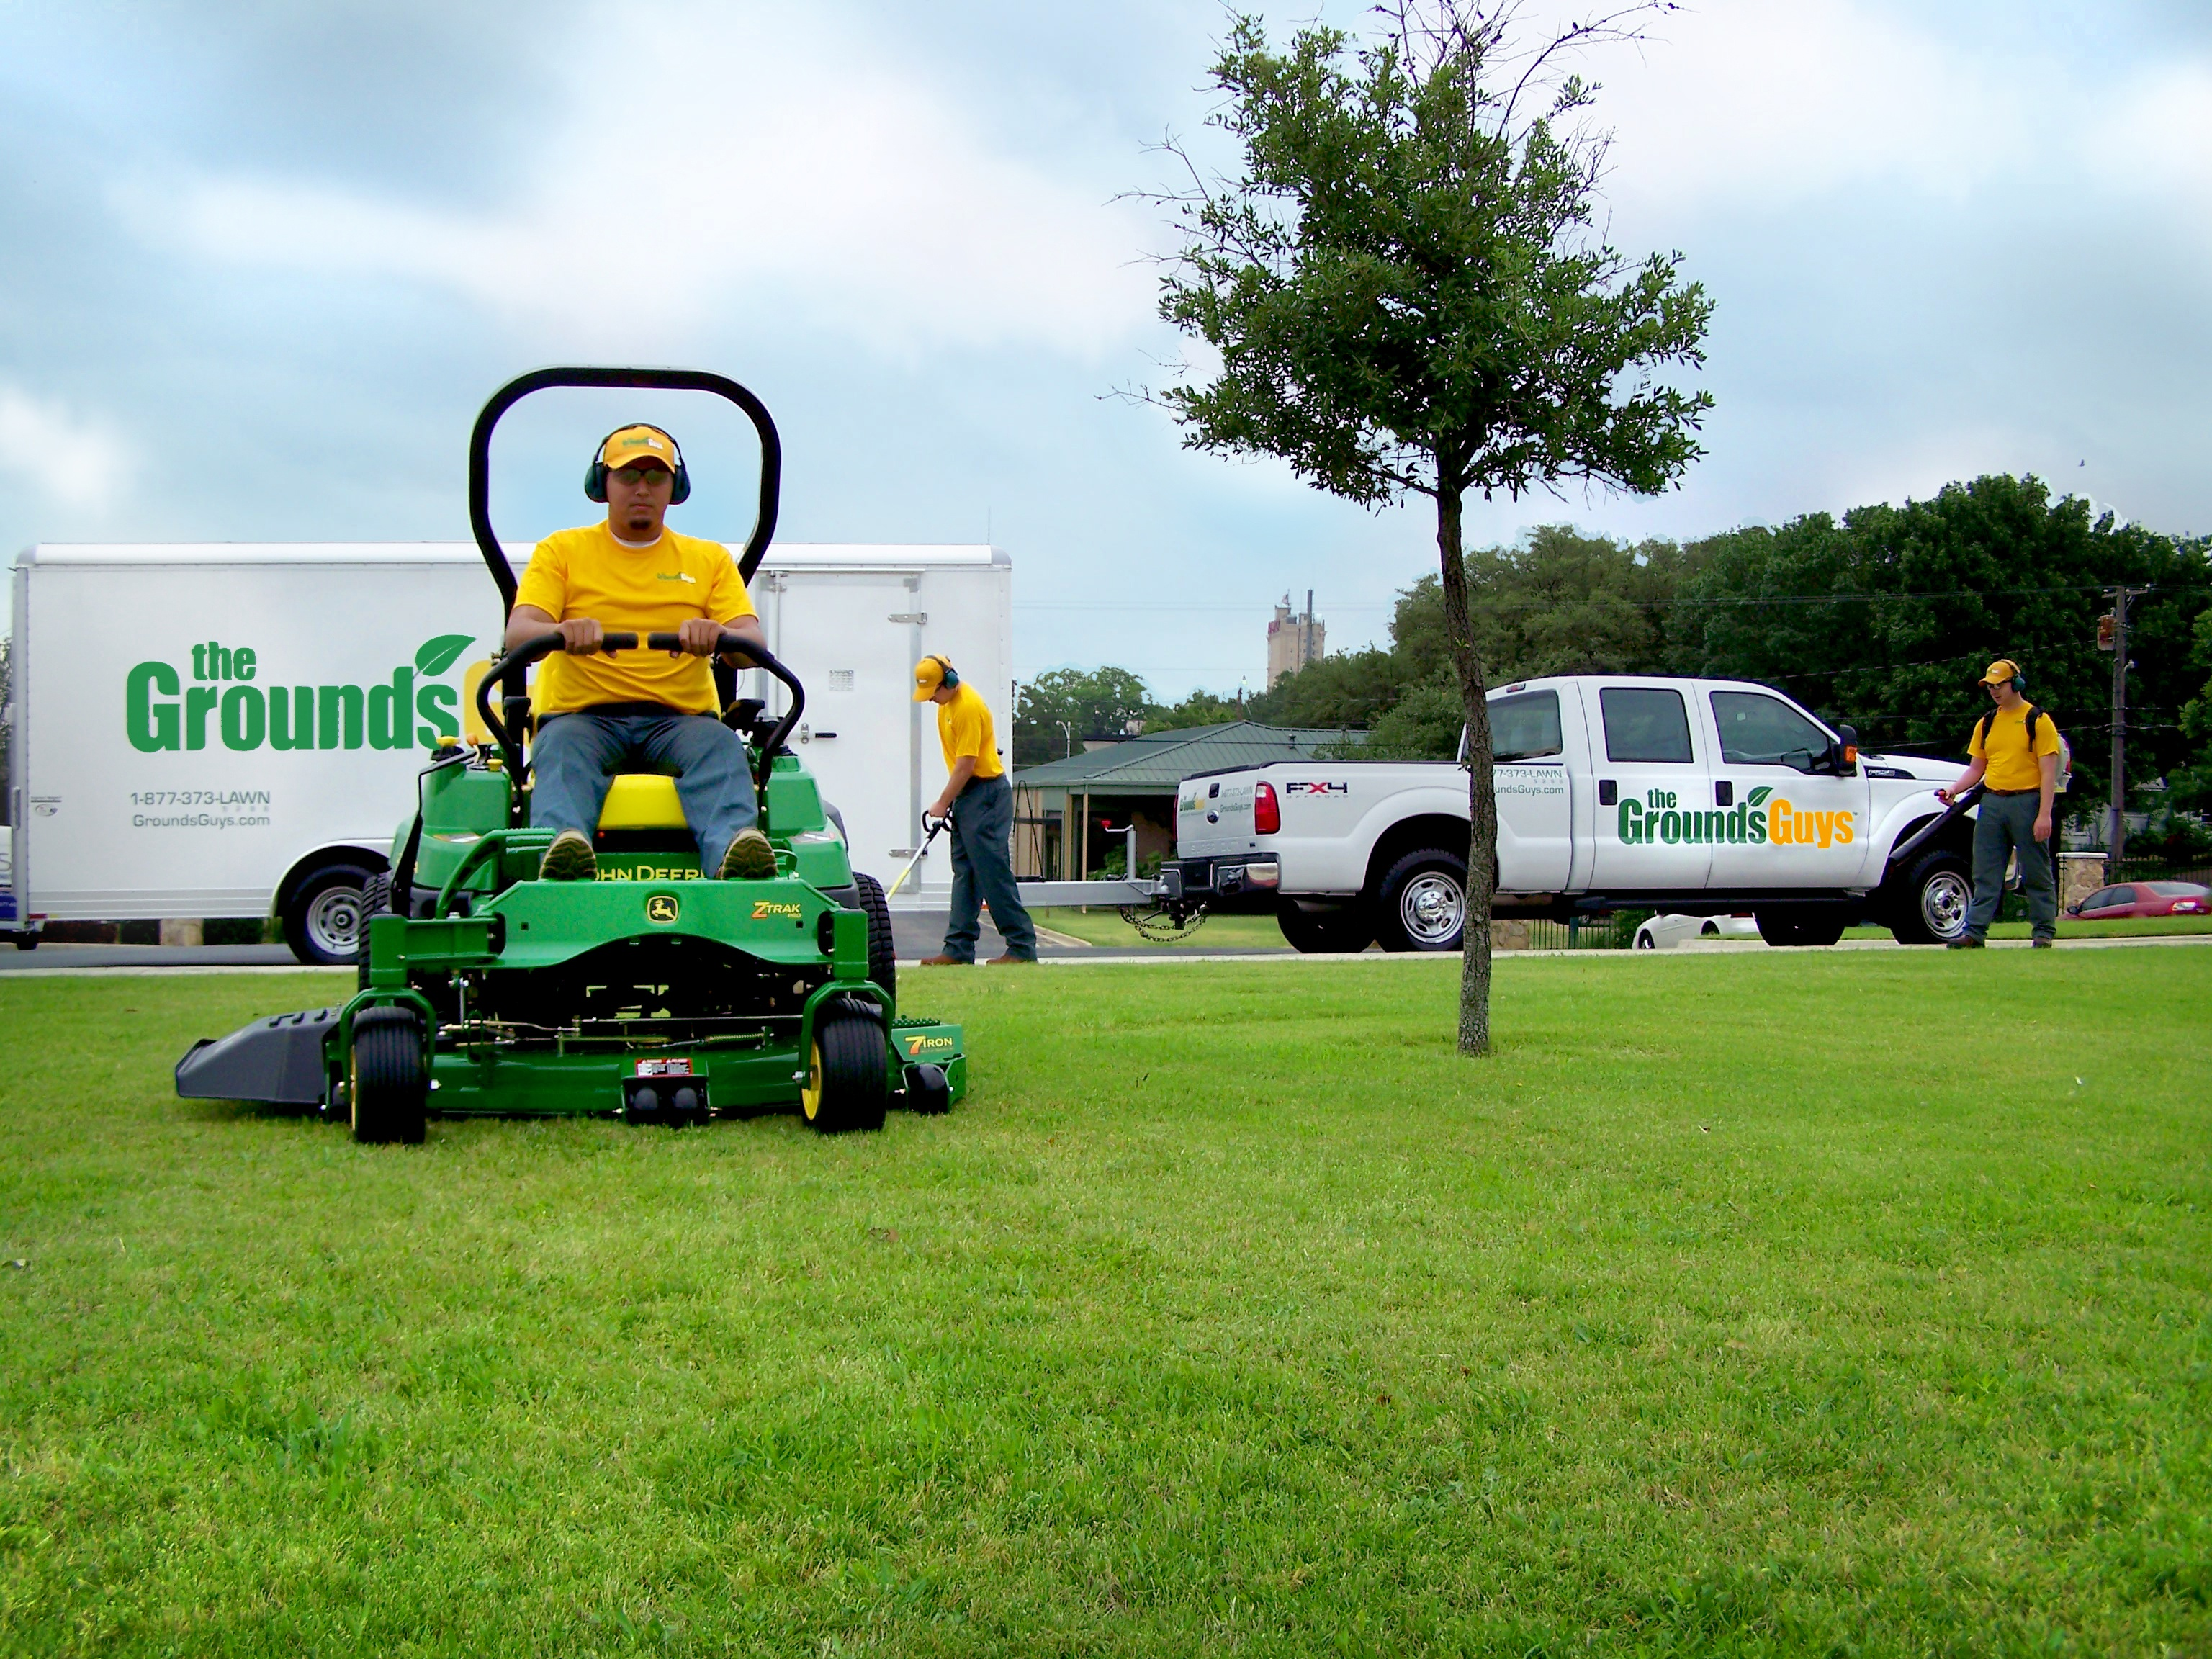 Grounds-Guys-Lawn-Care-Business.jpg